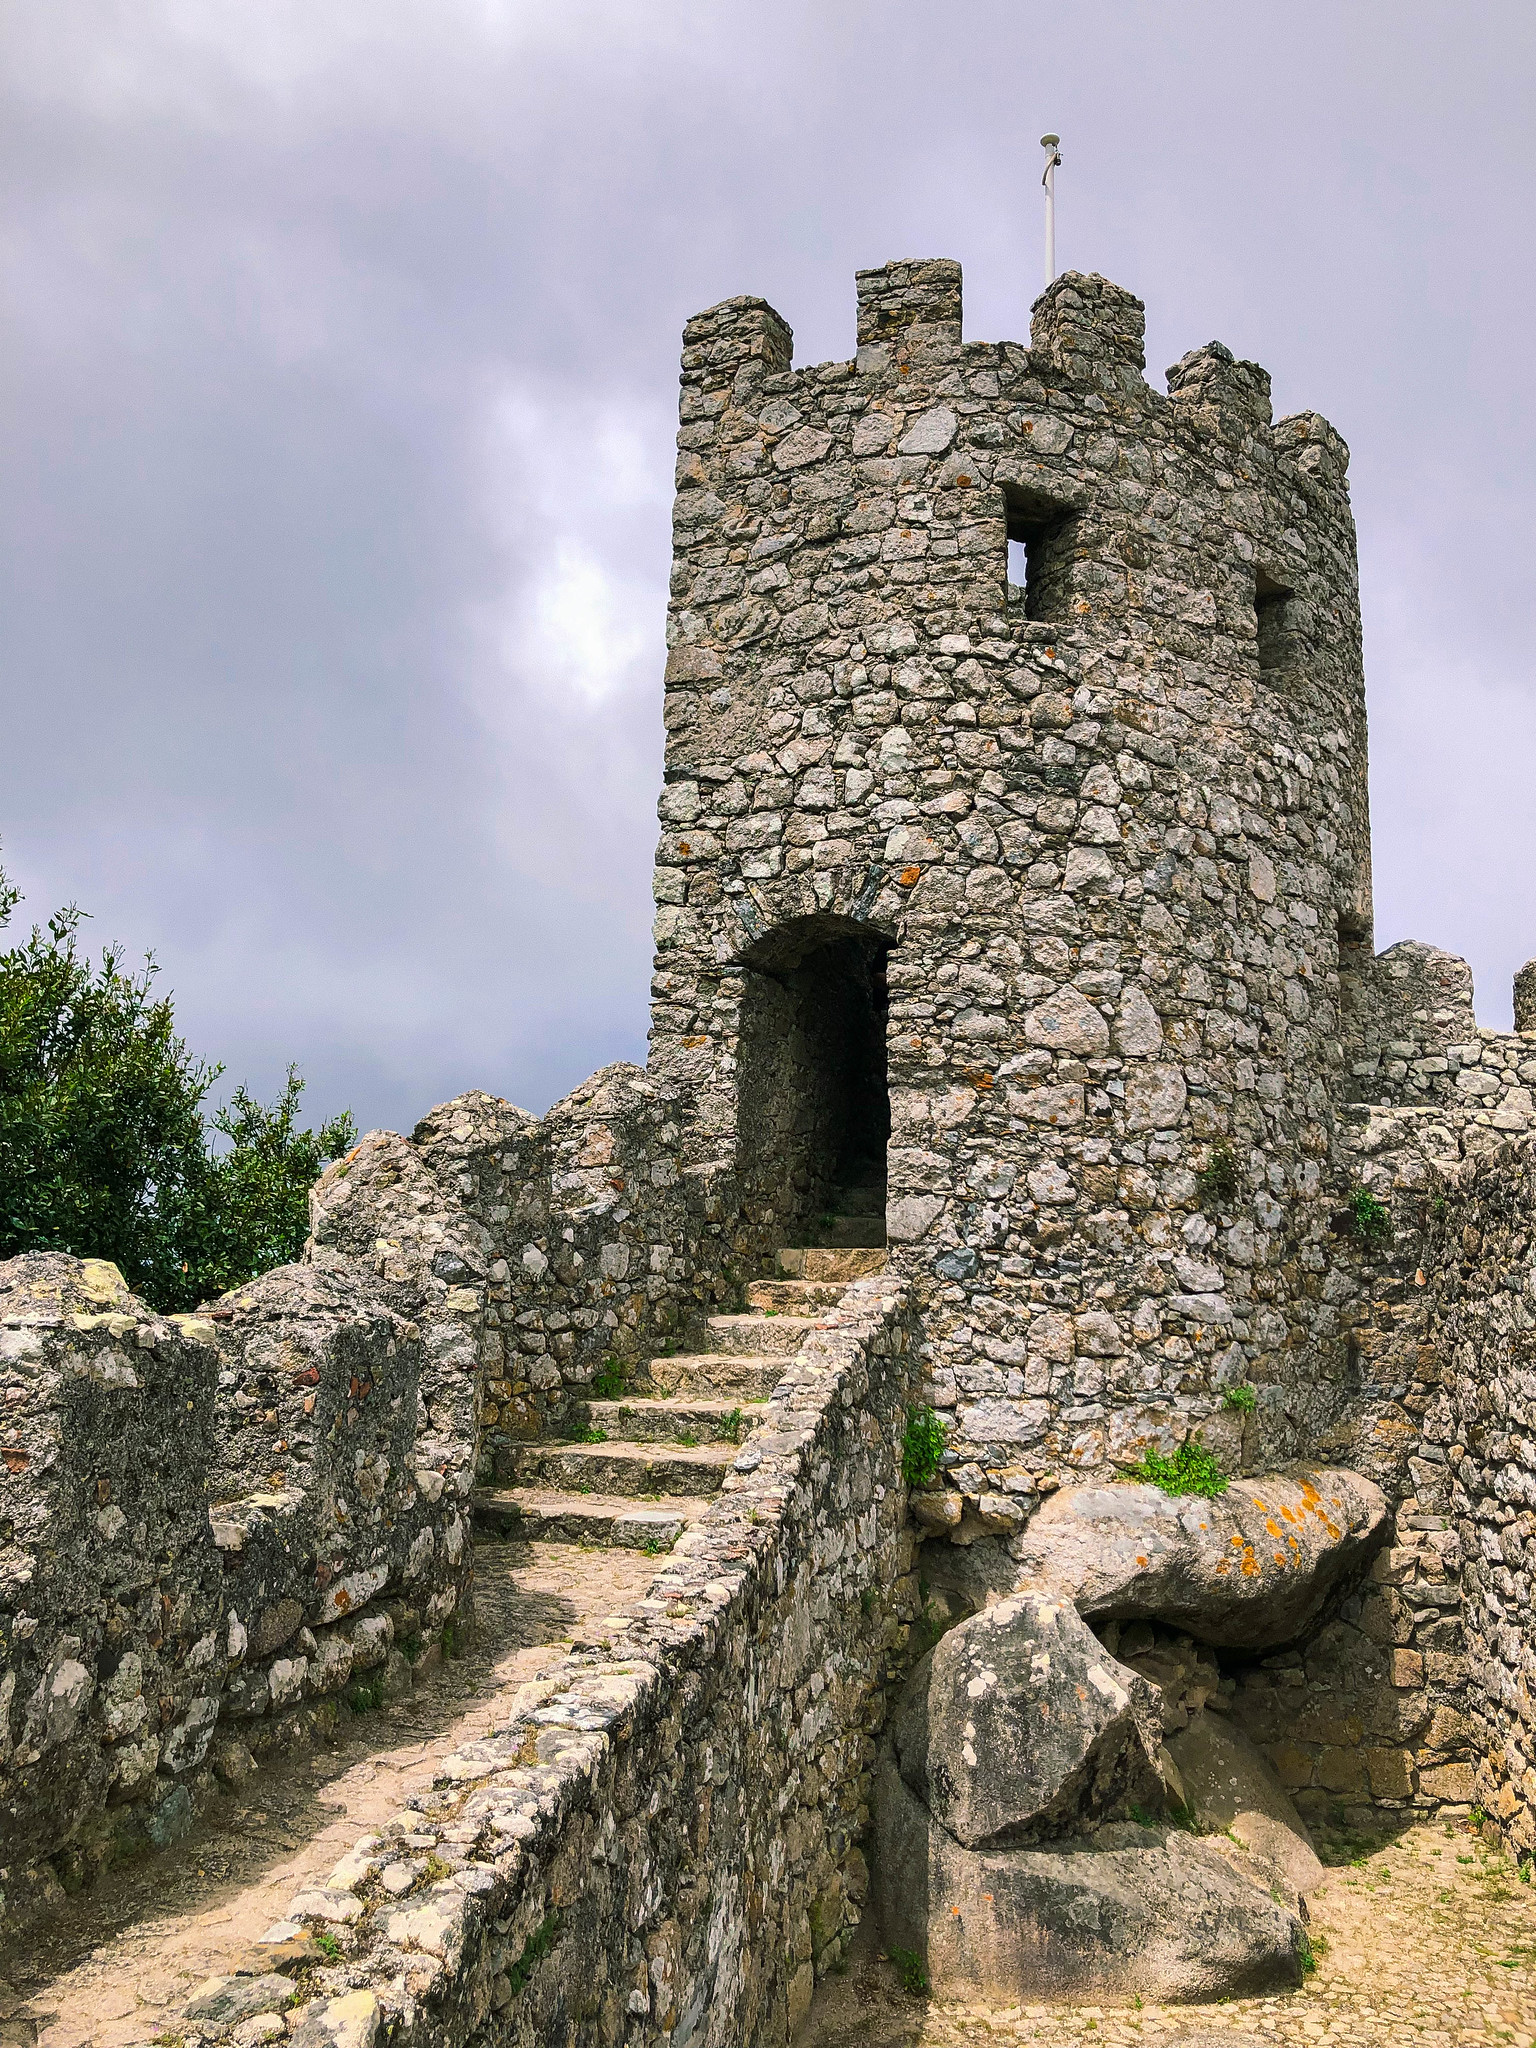 The Ultimate 1-Day Sintra Guide: Tips on Maximizing your Time and which are the Best Castles to See on a Lisbon Day Trip to Sintra